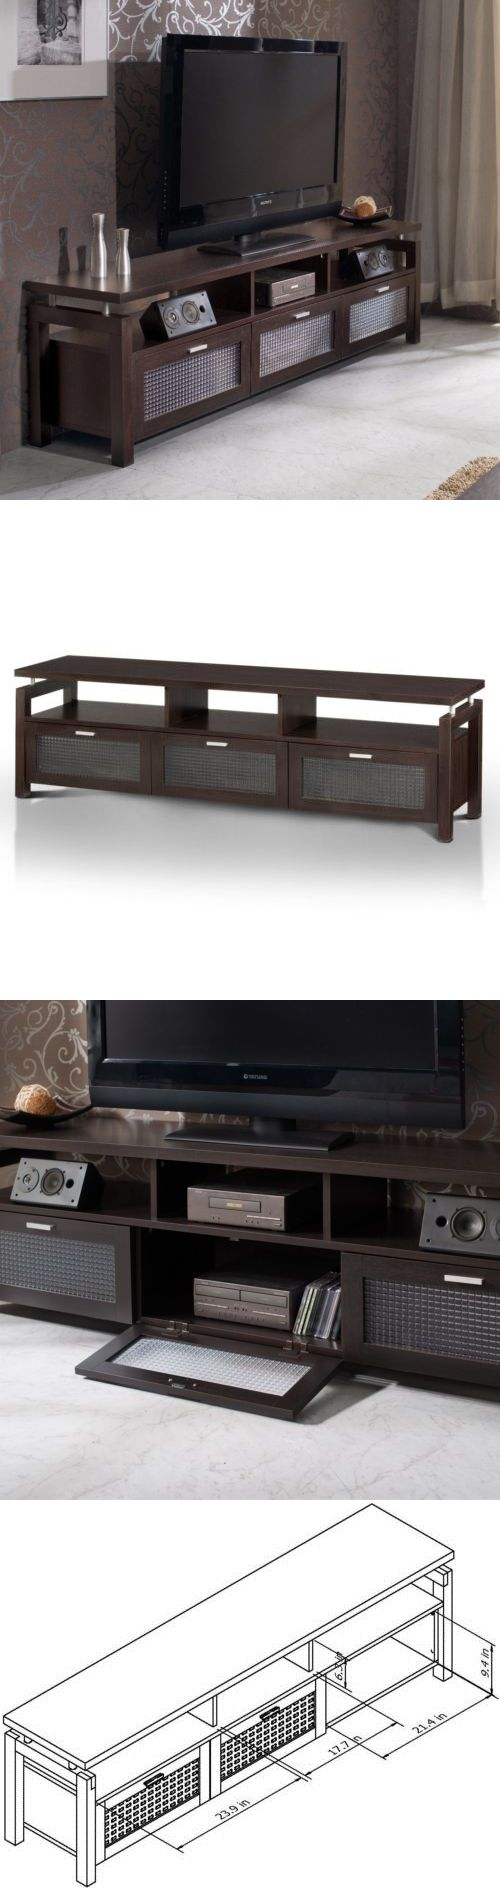 Entertainment Units TV Stands: Furniture Of America Bauston Espresso Entertainment Console 70-Inch Tv Stand -> BUY IT NOW ONLY: $243.85 on eBay!